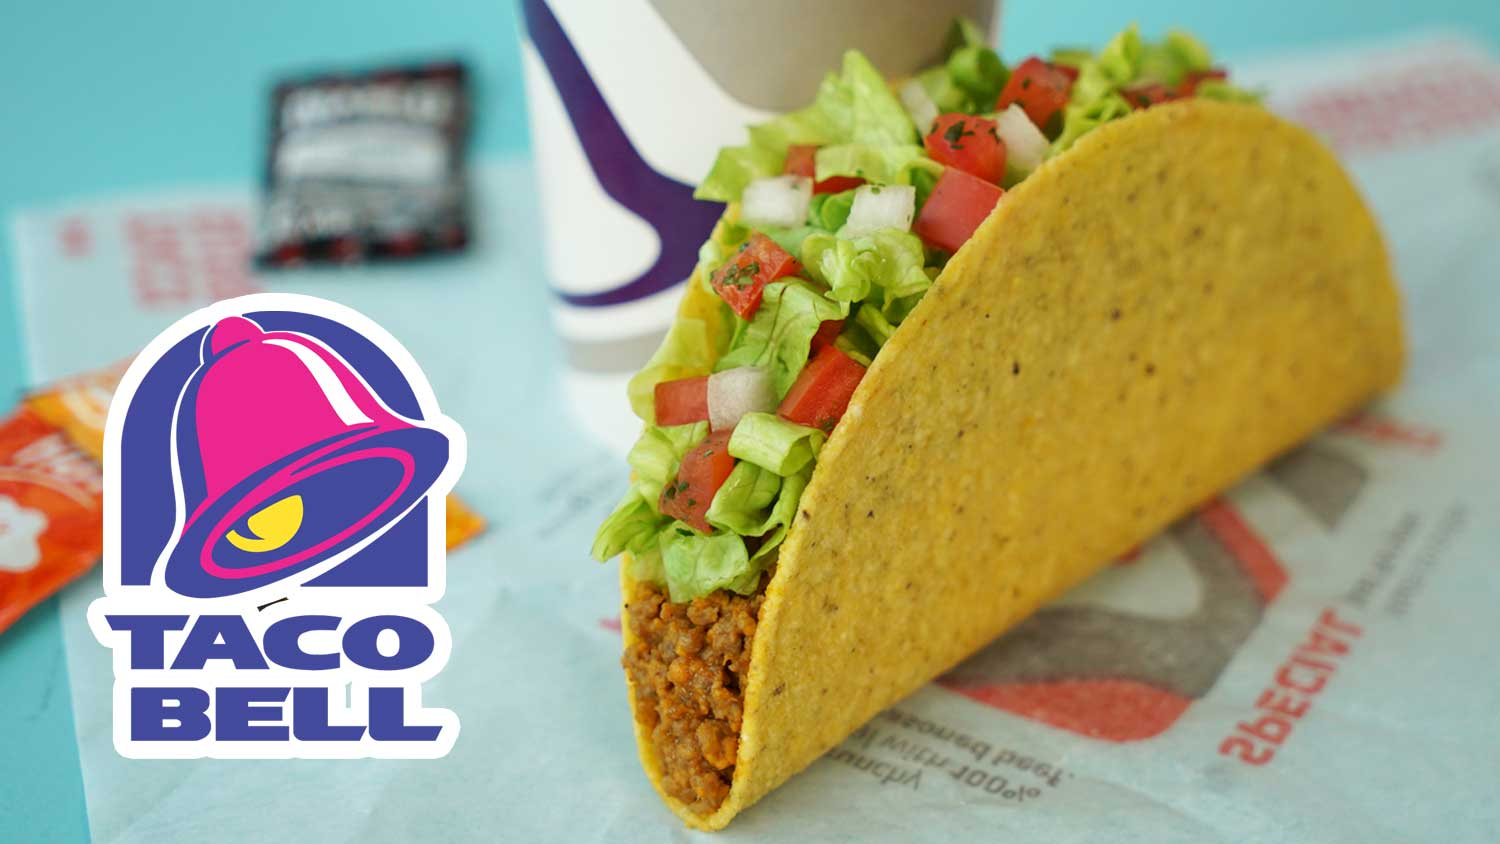 Taco Bell Is Adding Vegan Meat to Its Menu Nationwide